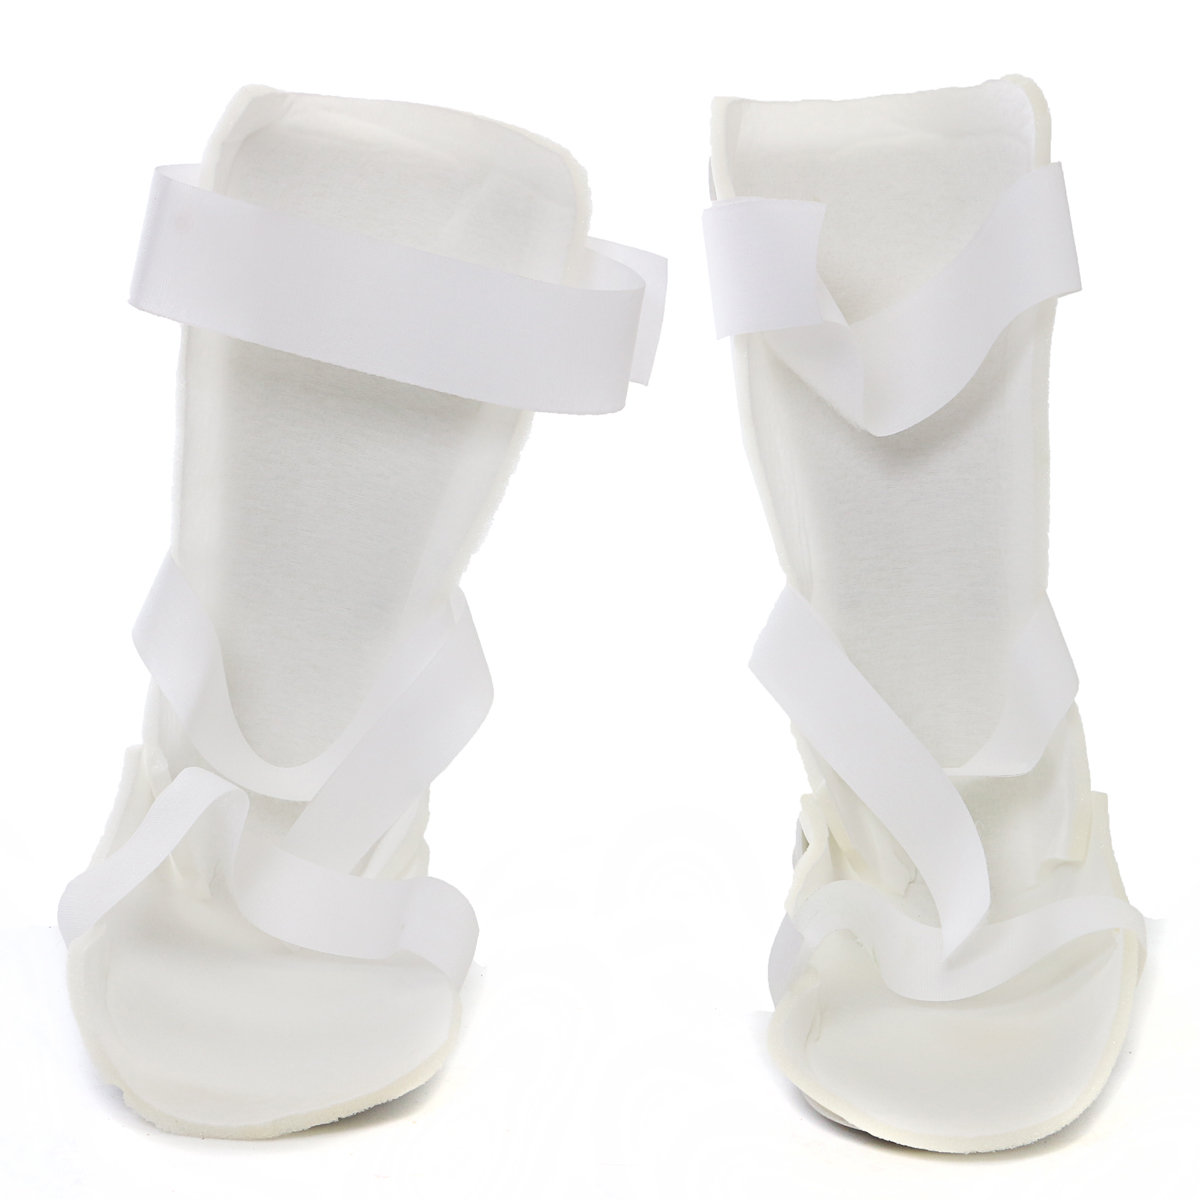 Durable Foot Drop Brace Ankle Support Night Splint Fracture